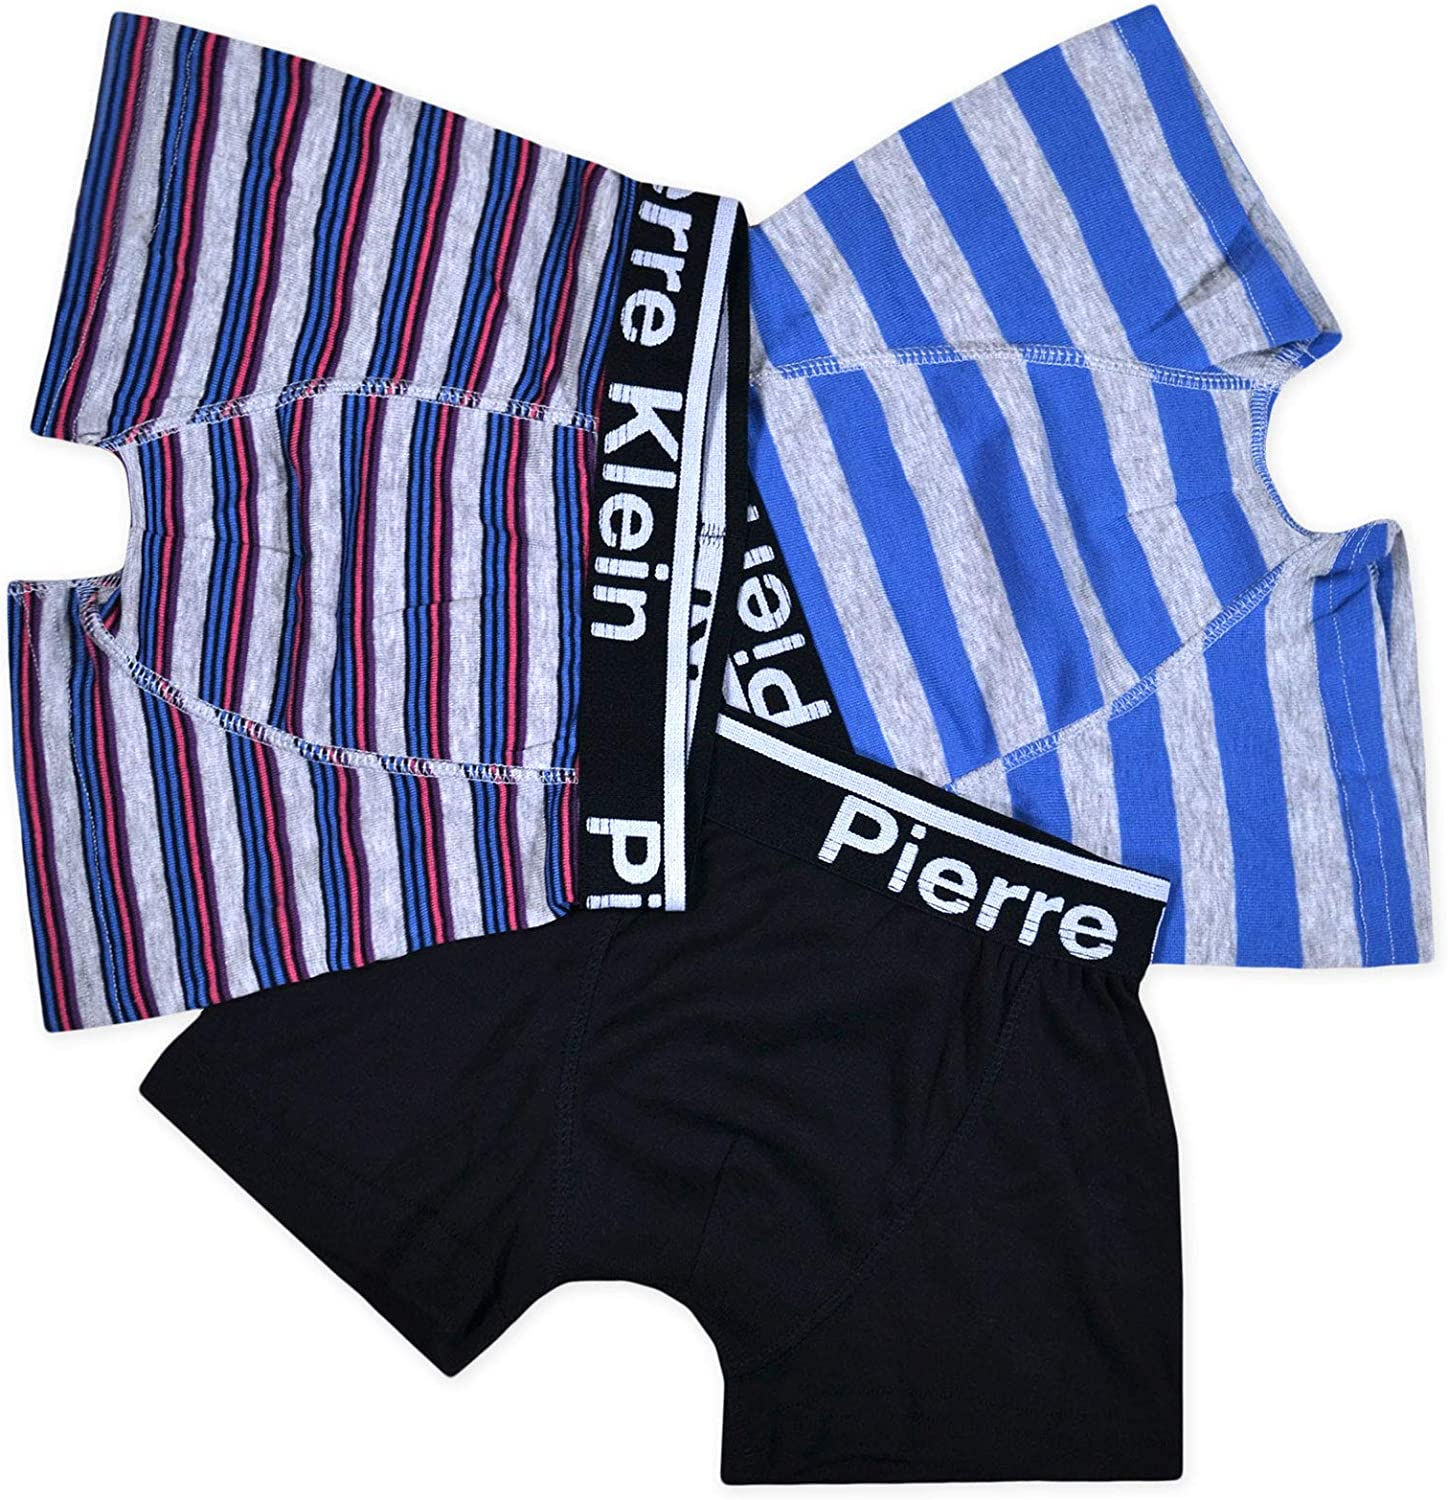 JollyRascals Boys 3 Pack Boxers Shorts Pants Kids Cotton 3 Pairs Underwear Ages 5-13 Years